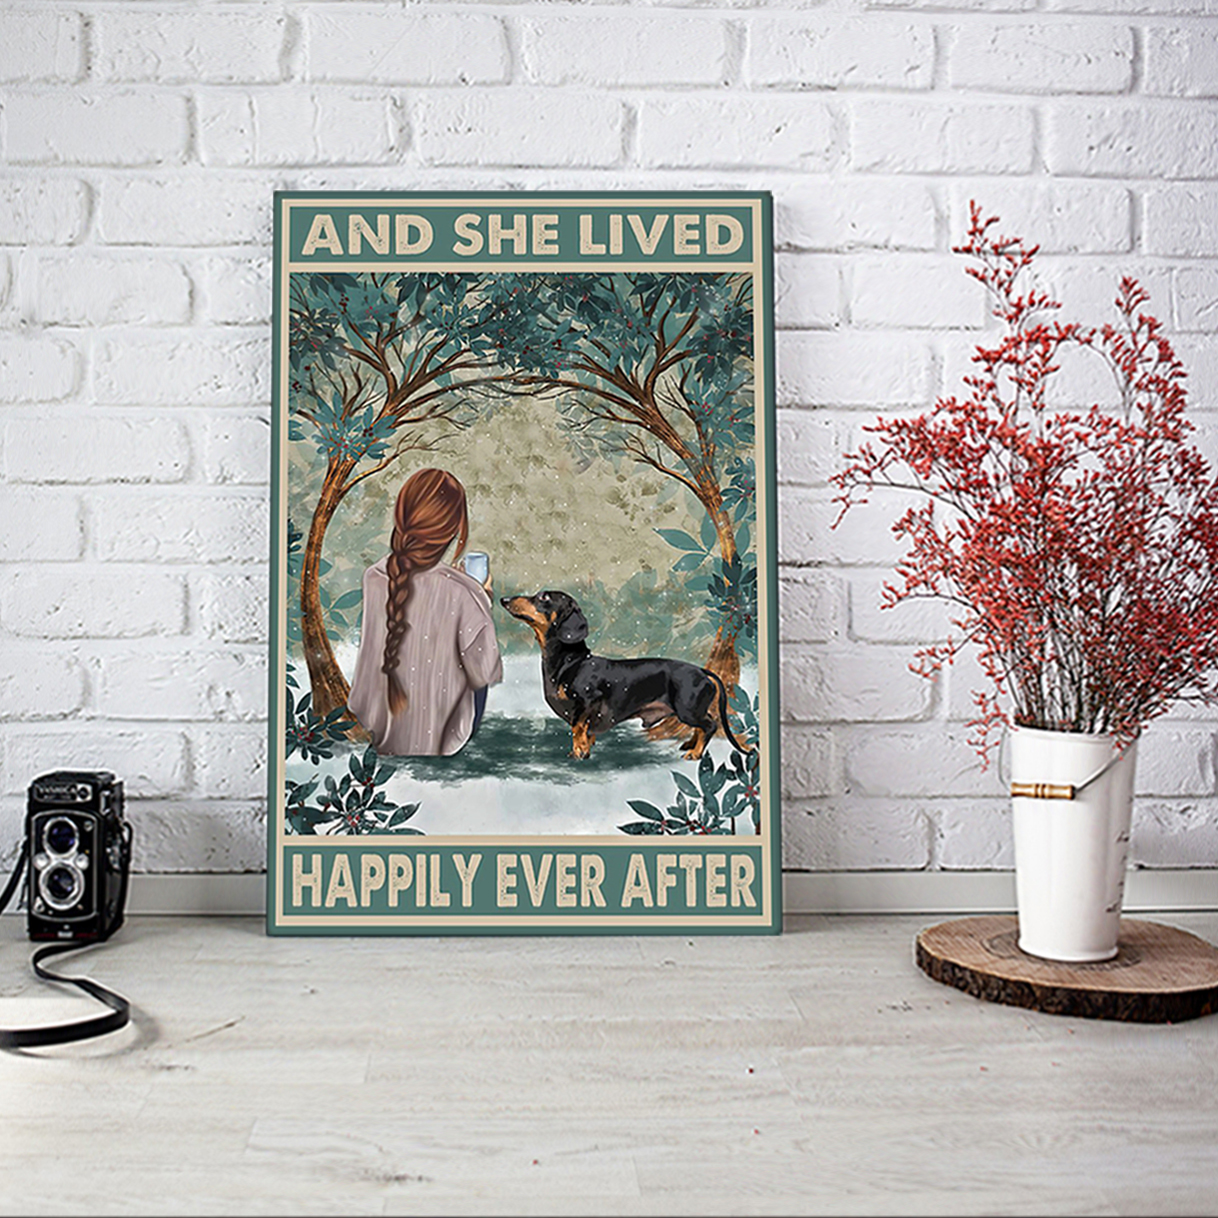 Dachshund And She Lived Happily Ever After Poster A2